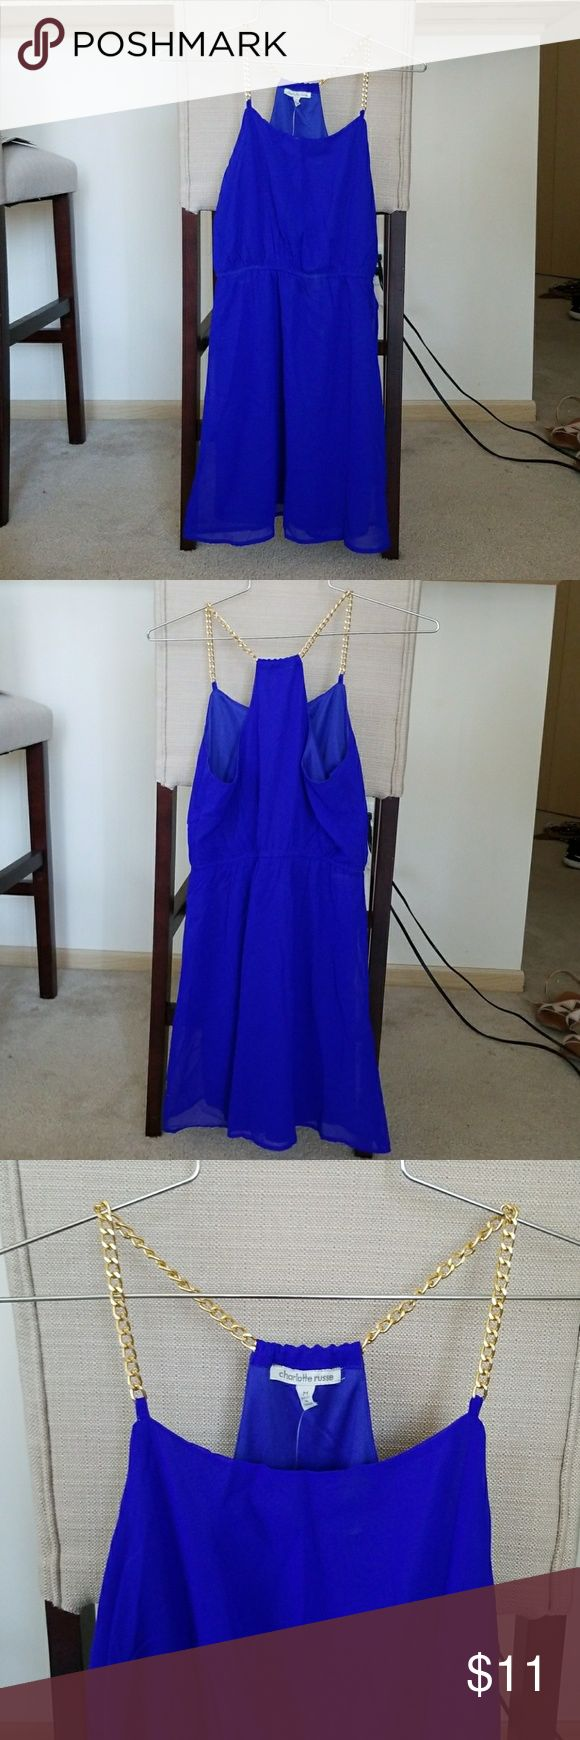 Bright Blue Dress with Gold Chain Straps Beautiful bright blue mini dress with gold chain shoulder straps is a simple yet head-turning piece. Cinches in at the waist to create a lovely shape. Very slight makeup on front of dress, would easily come out with wash, but to keep tags on I haven't washed it. Charlotte Russe Dresses